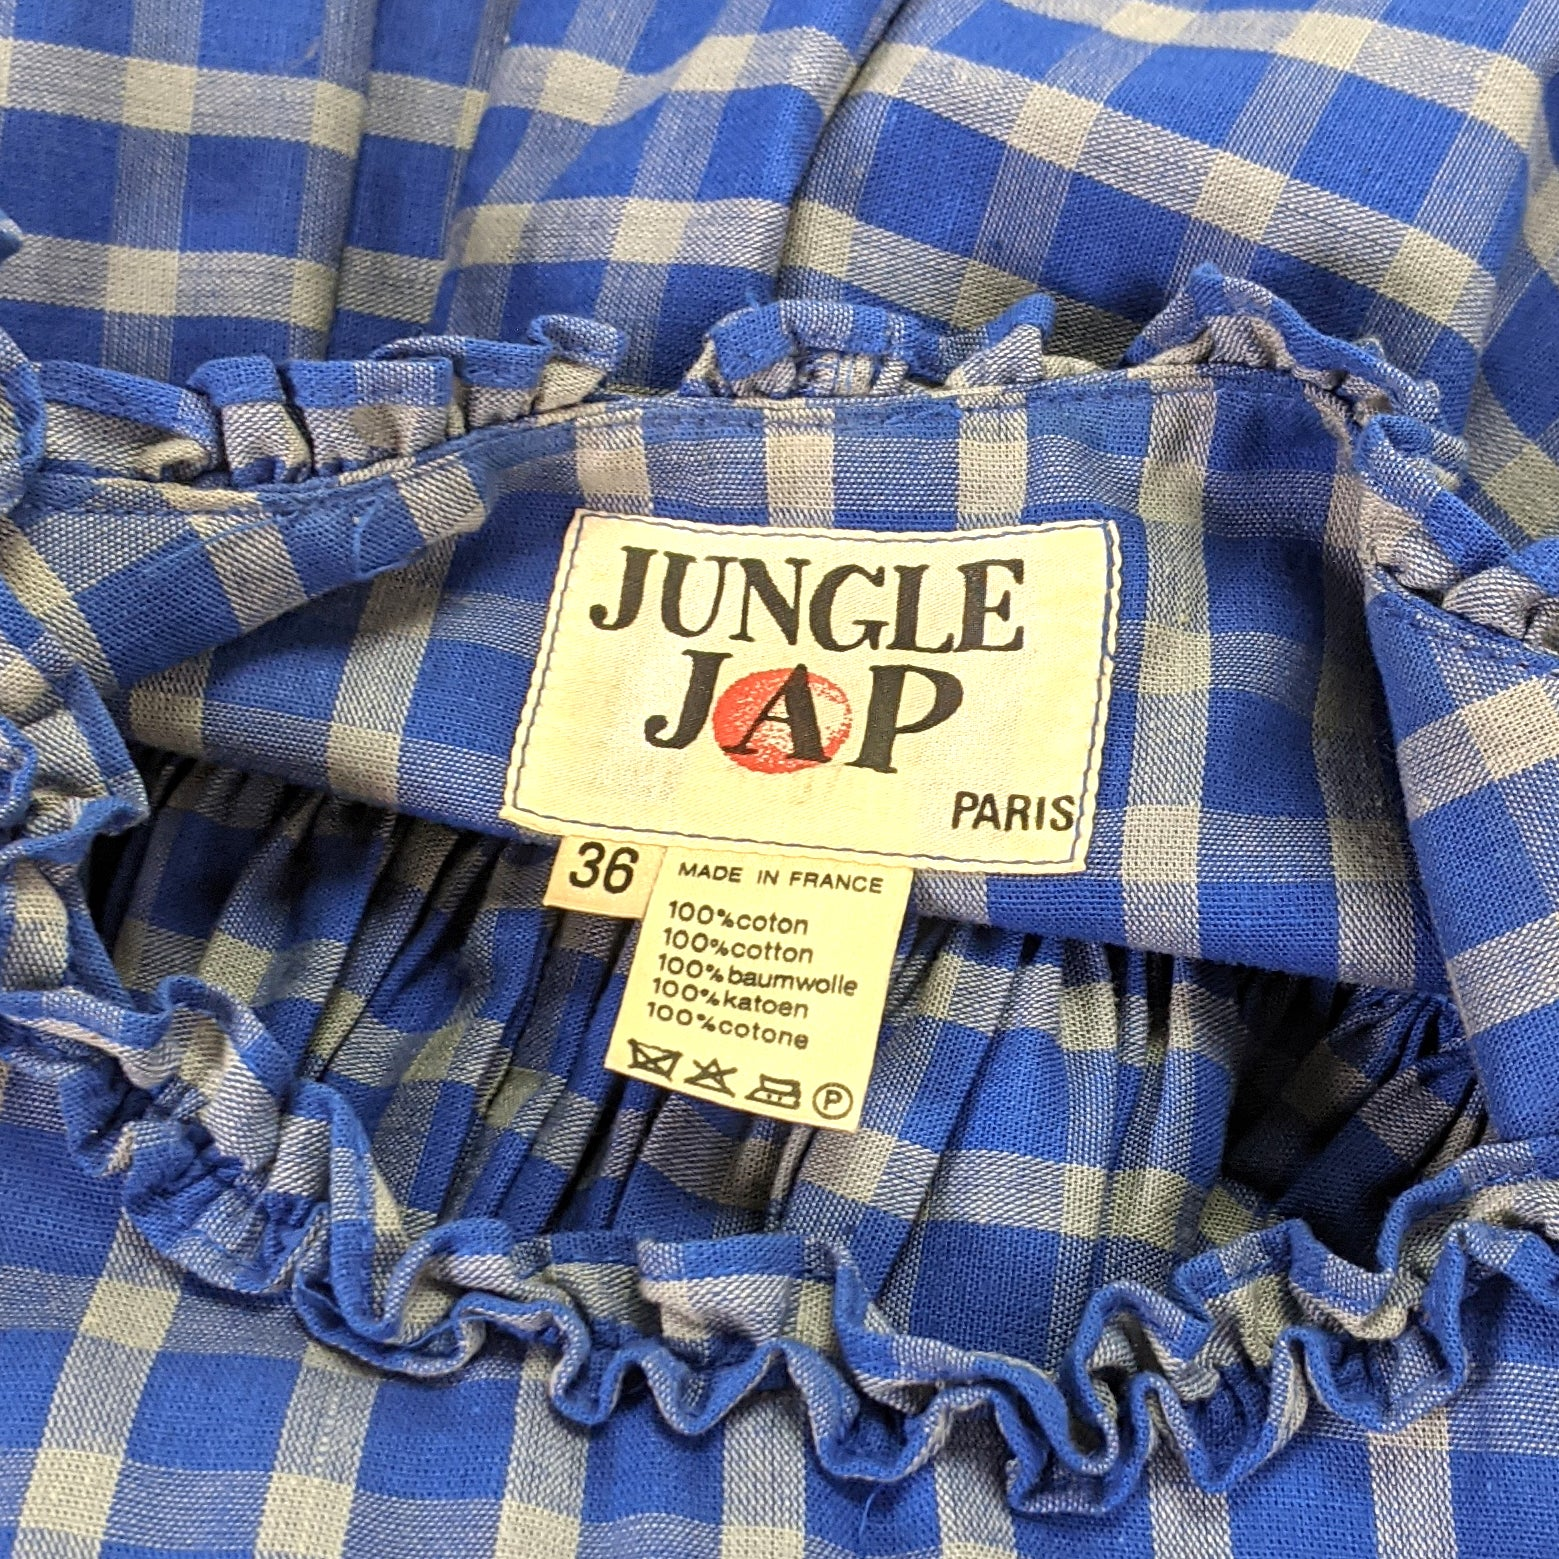 Jungle Jap by Kenzo - 36